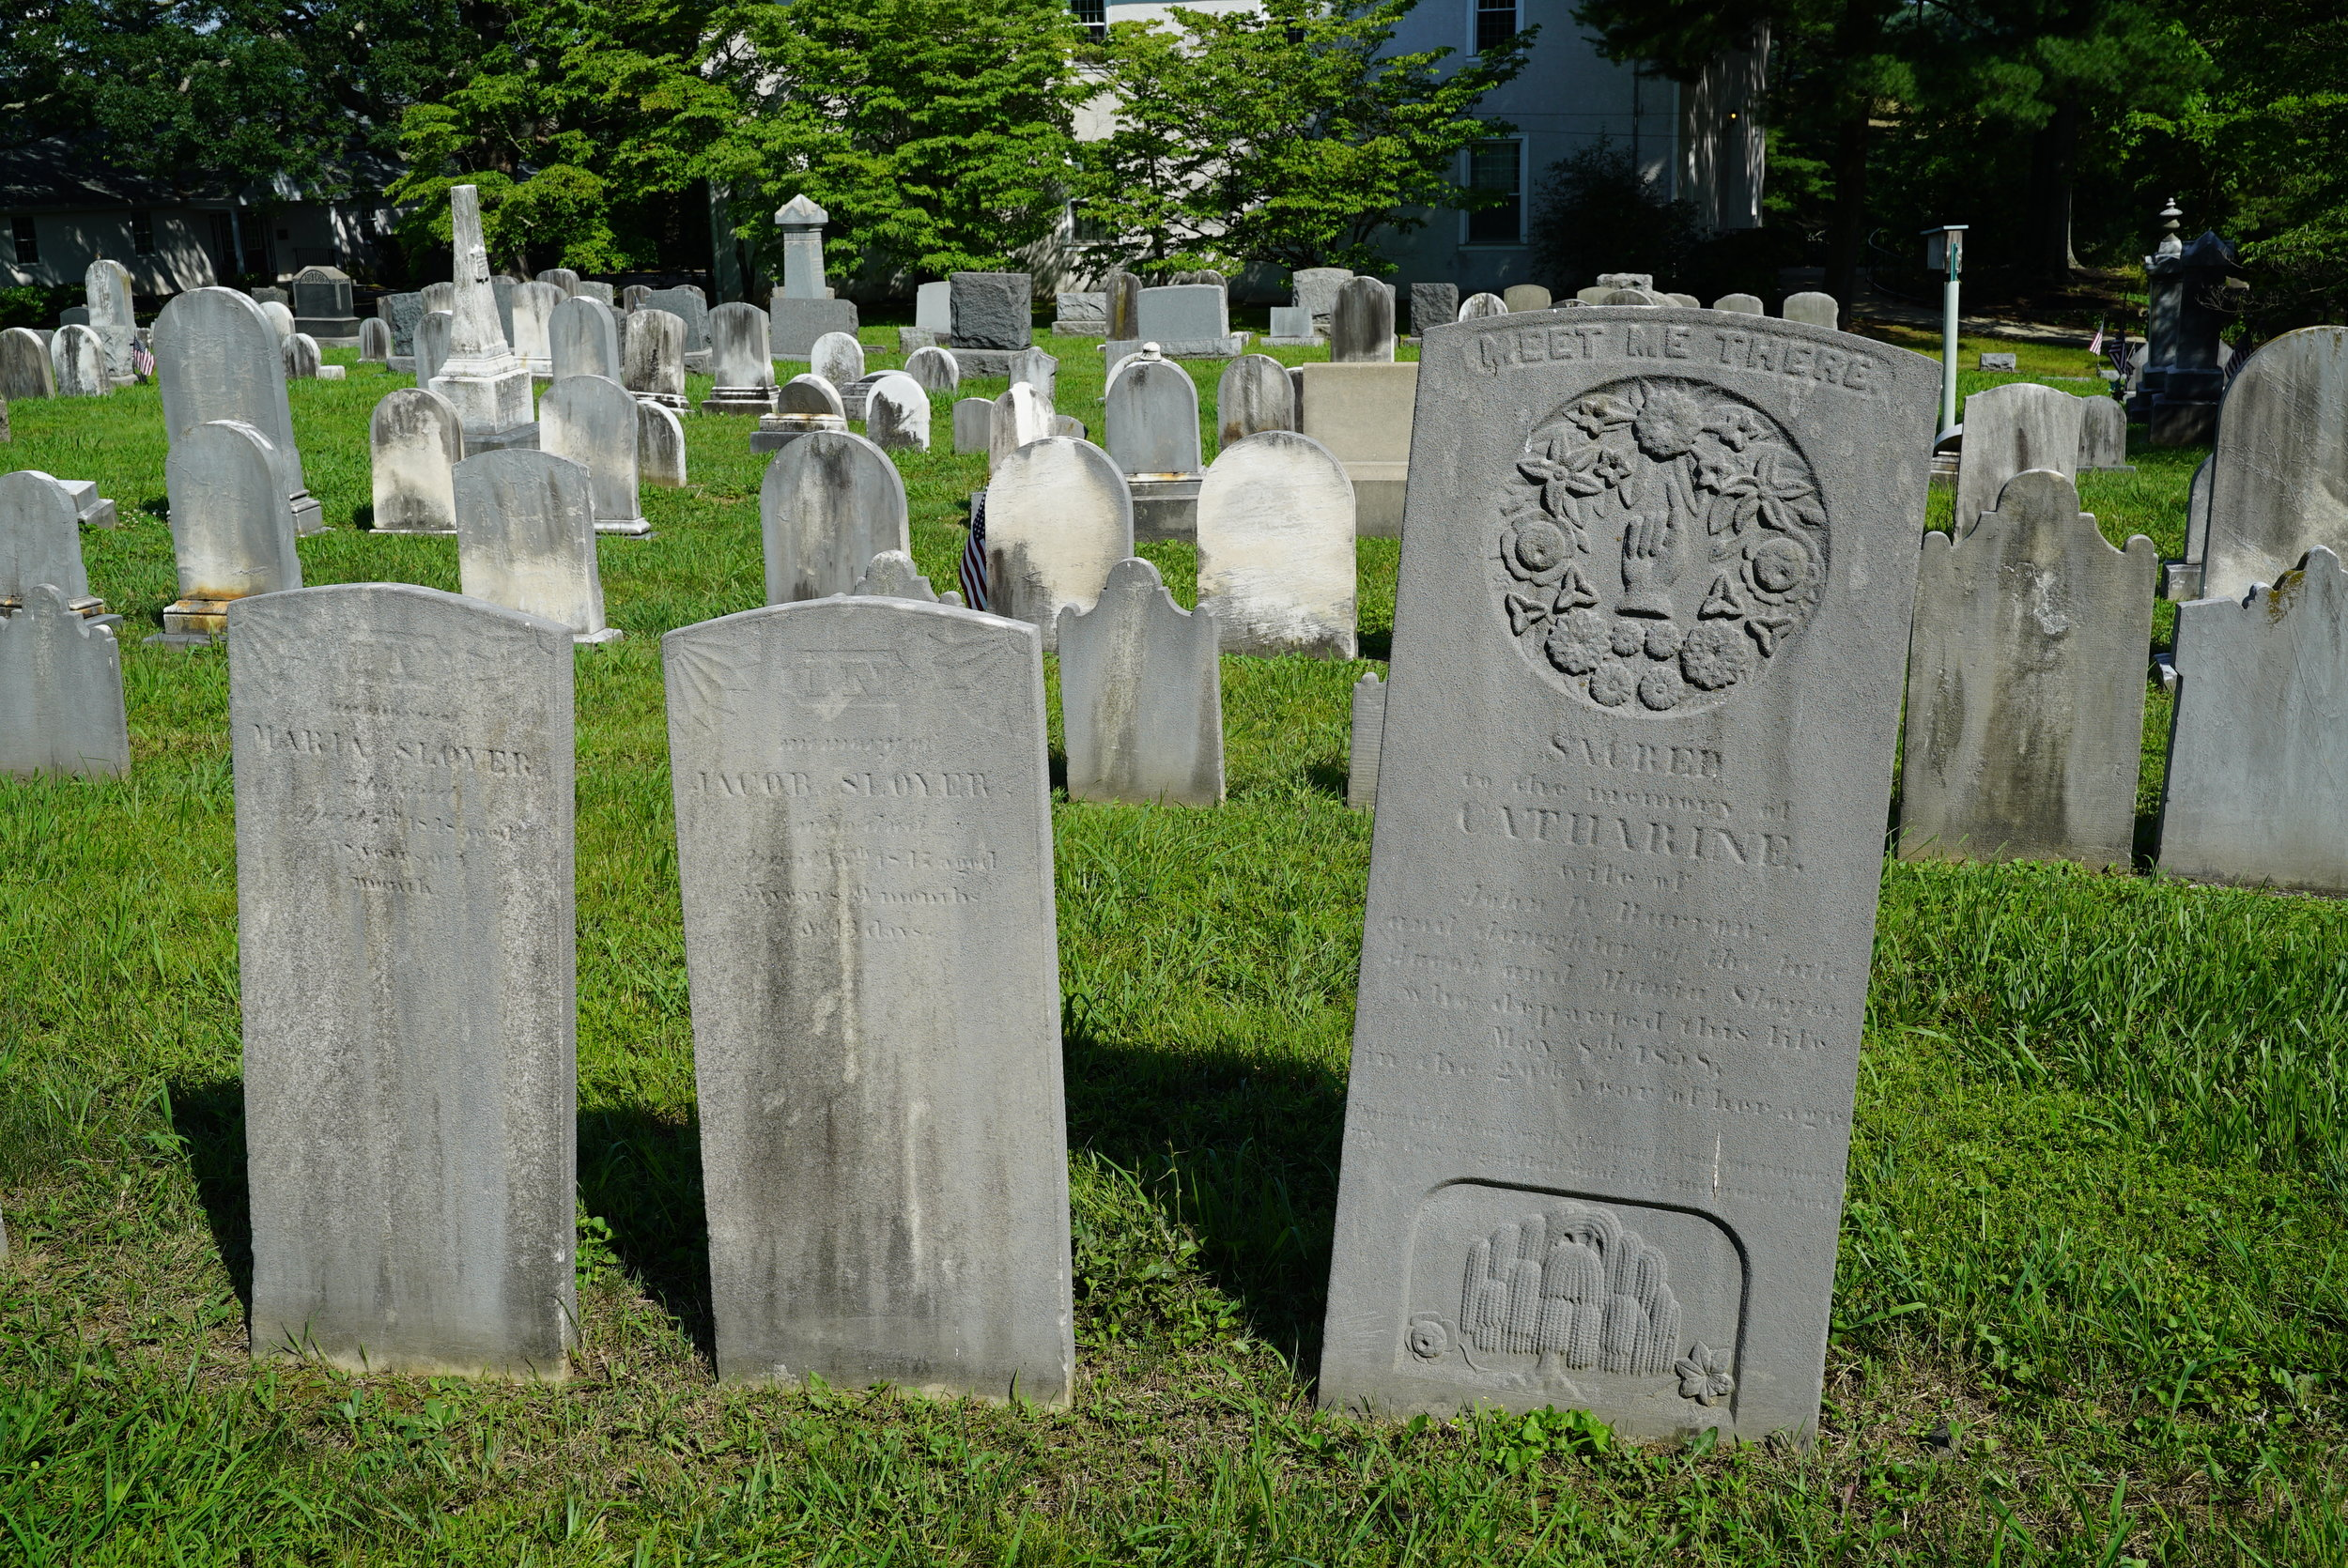 Ancient gravestones at St. Peter's Pikeland UCC Cemetery. Chester Springs, Pennsylvania.